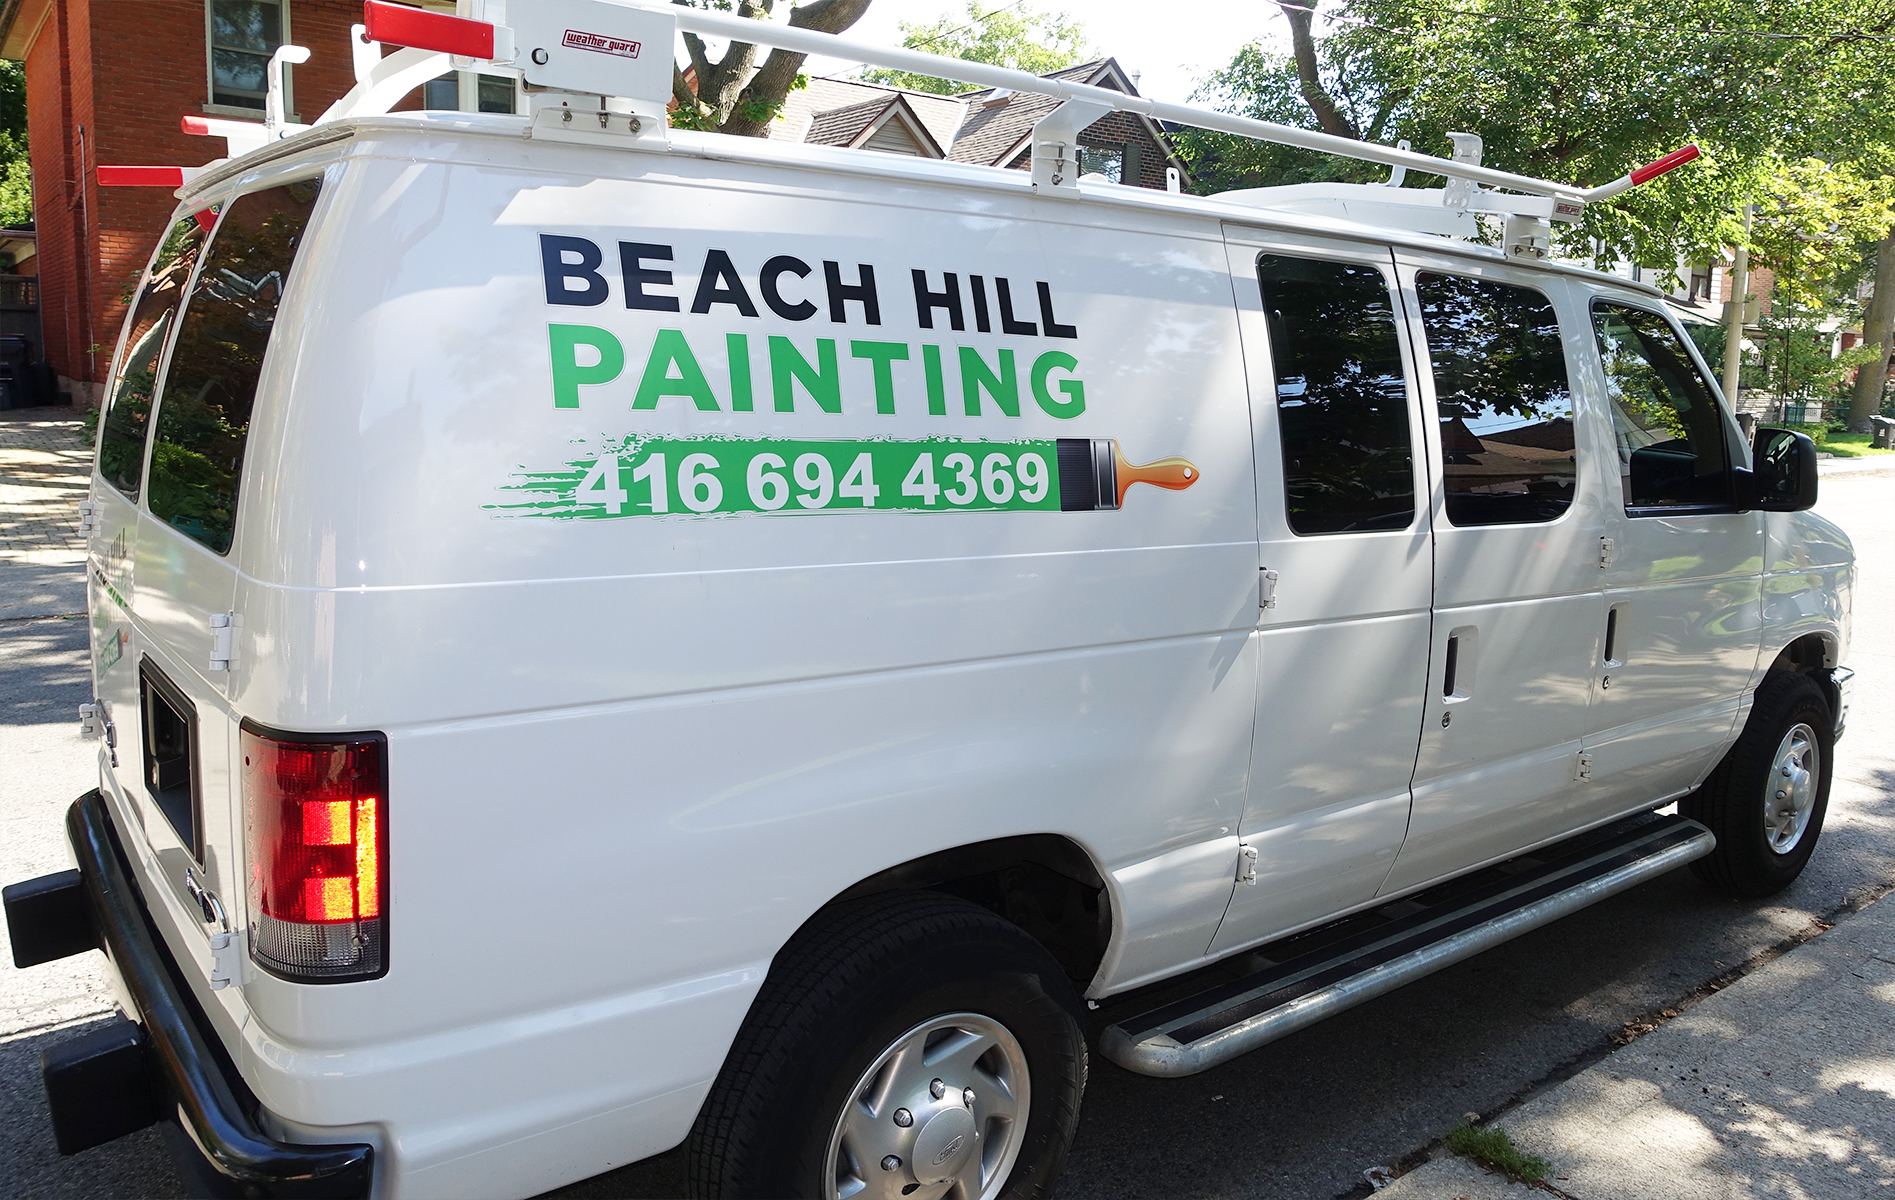 House Painters & Painting Contractors Toronto Beaches   Beach Hill ...